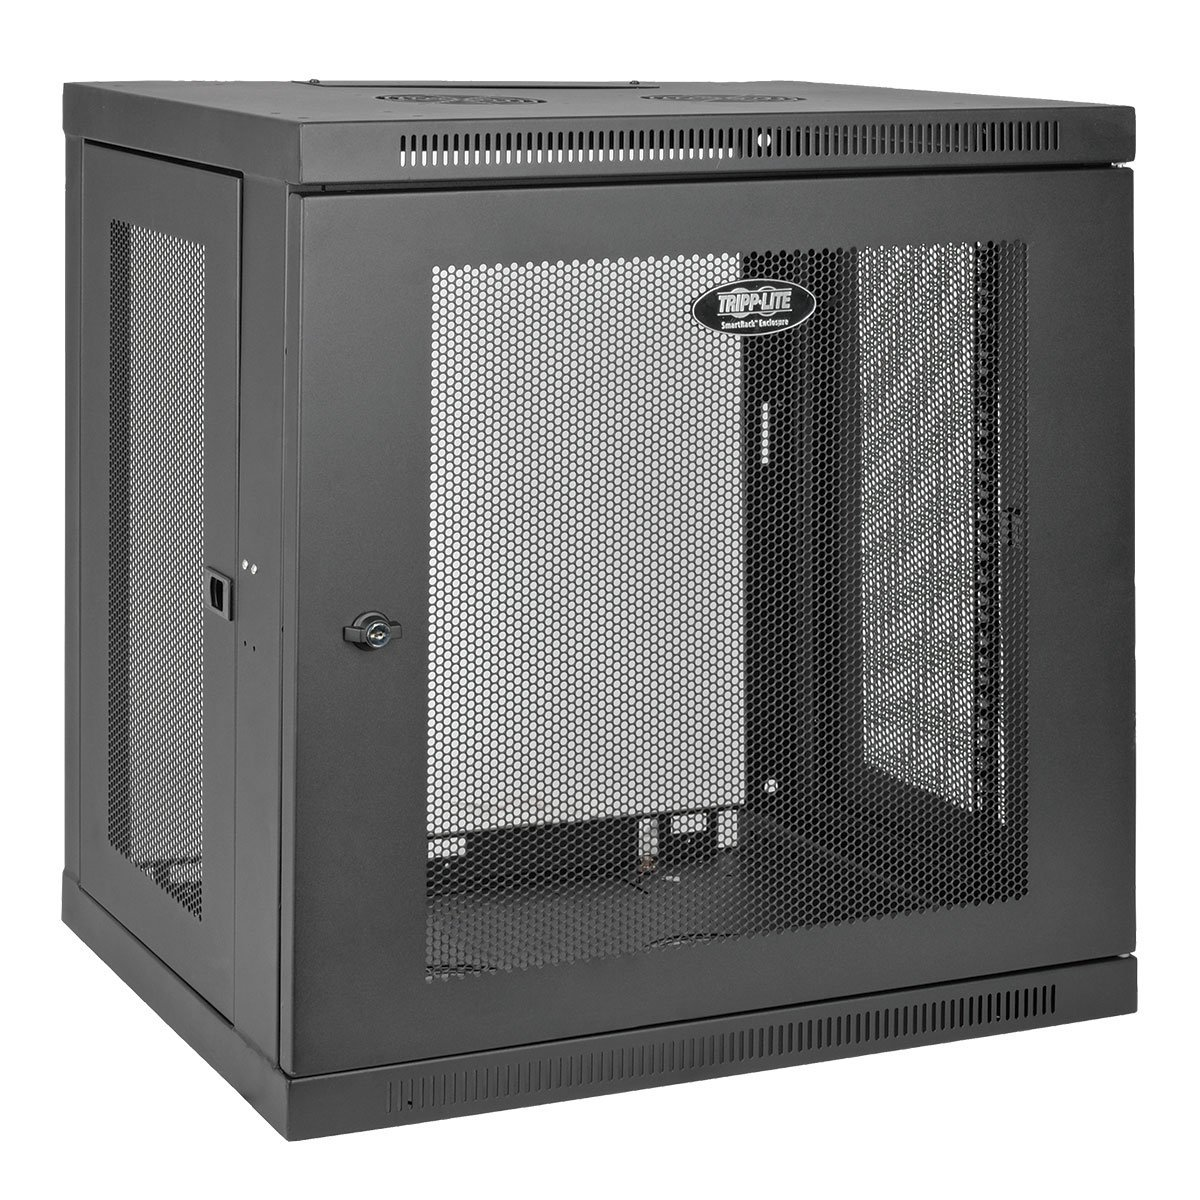 Tripp Lite 12U Wall Mount Rack Enclosure Server Cabinet, 16.5'' Deep, Switch-Depth (SRW12U) by Tripp Lite